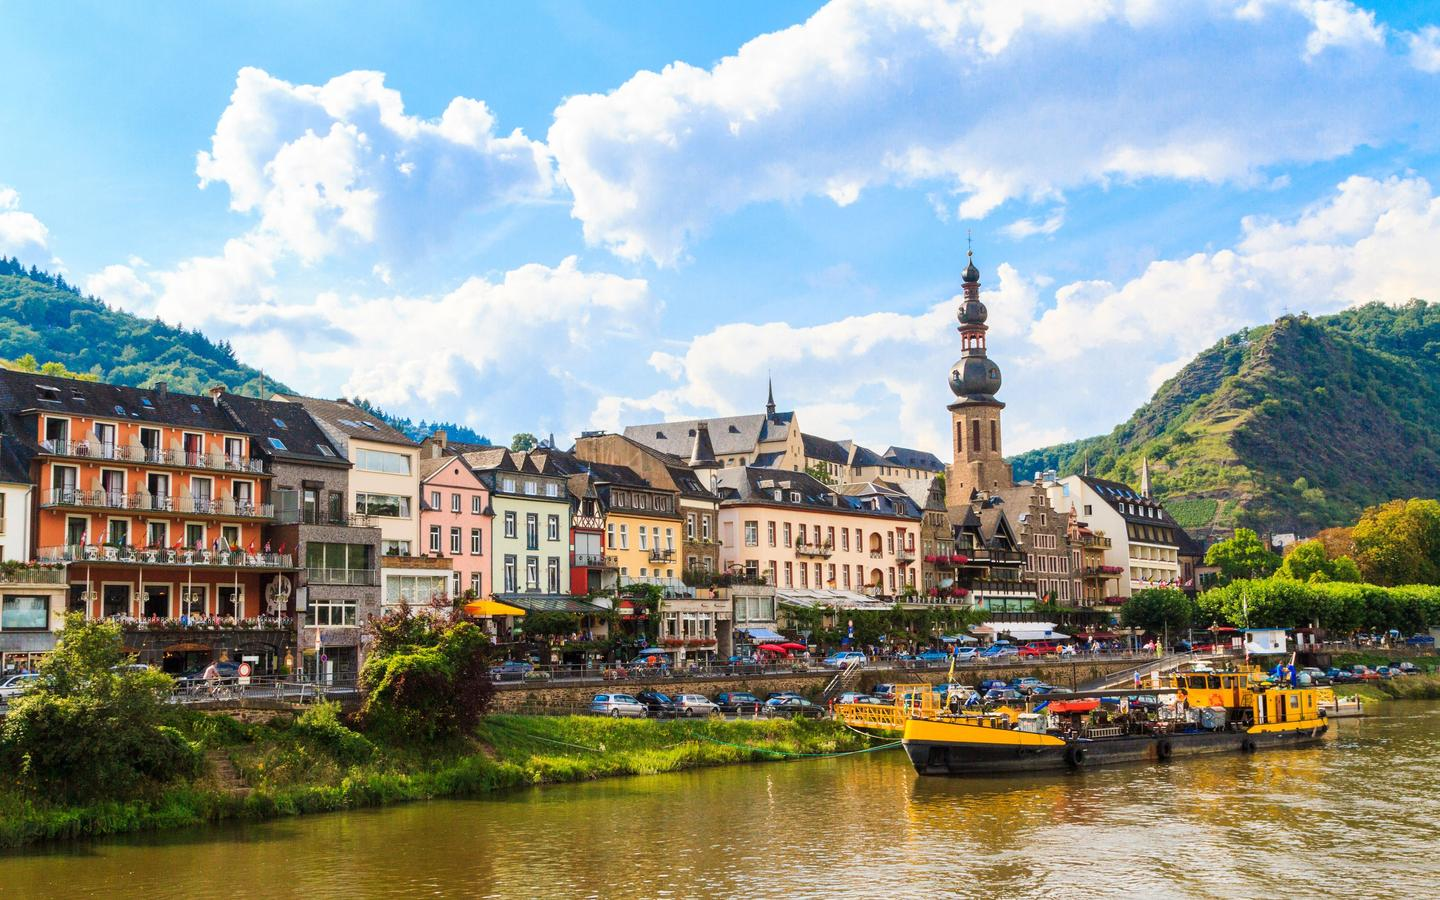 Hotels in Cochem